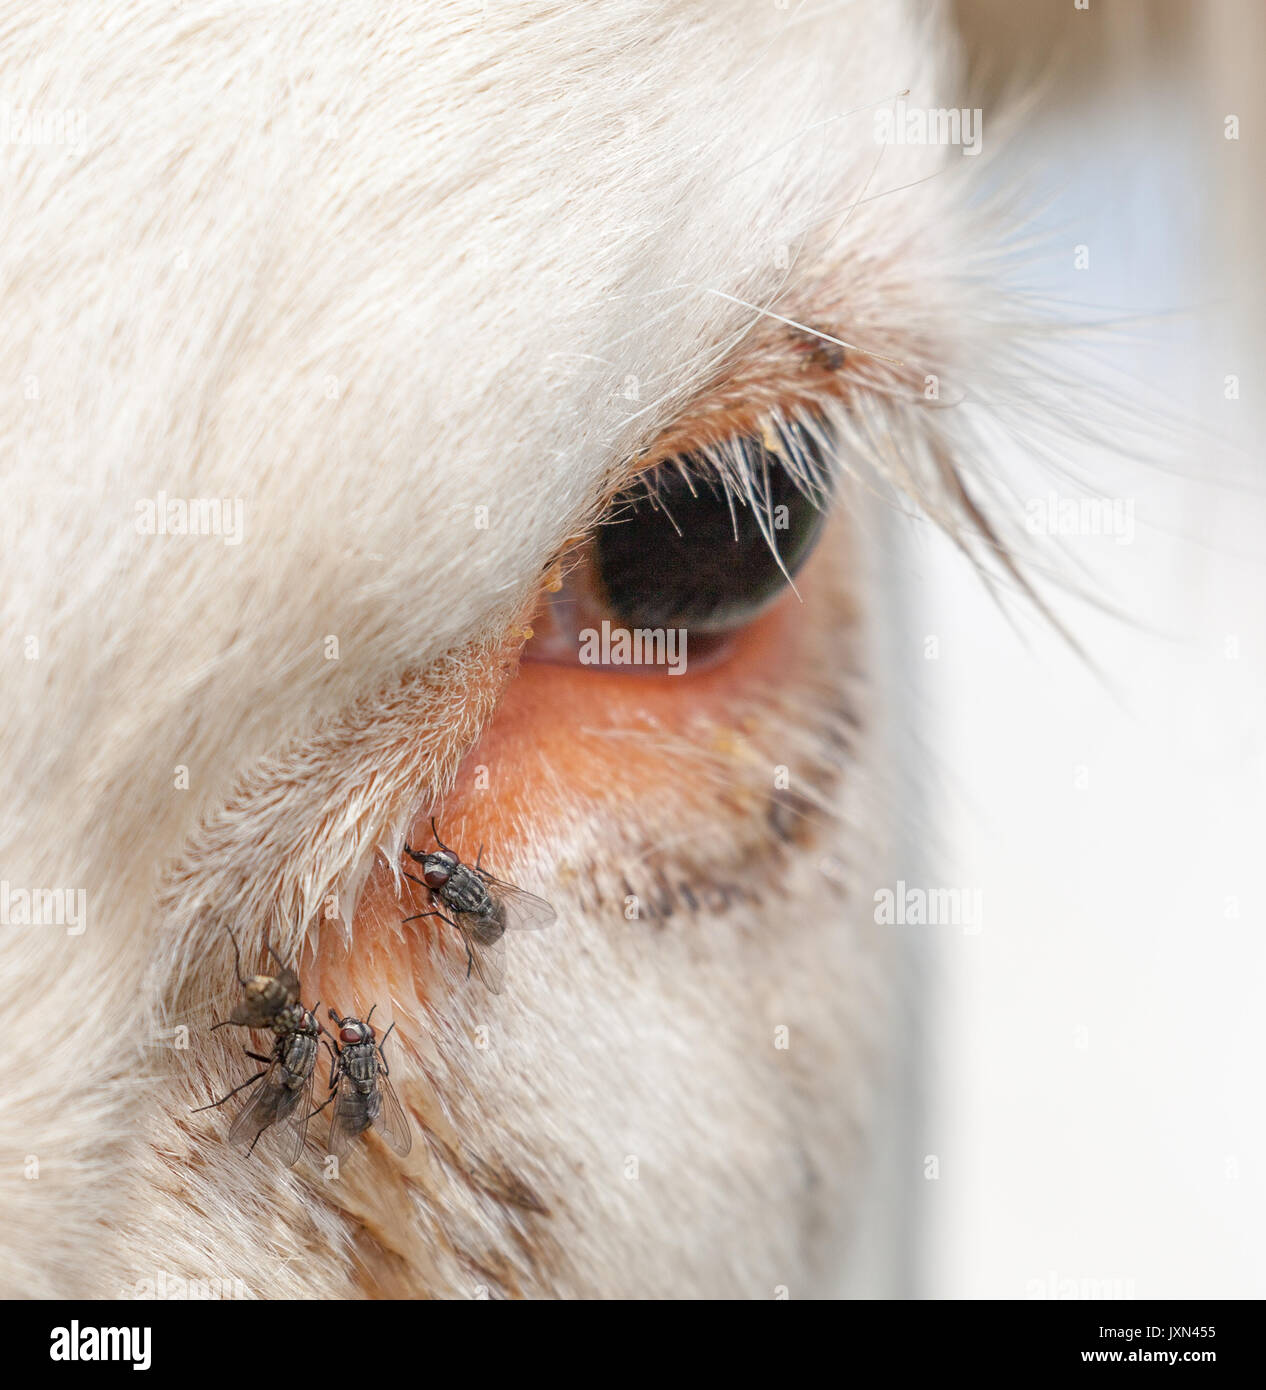 Cow eye with flies. Stock Photo